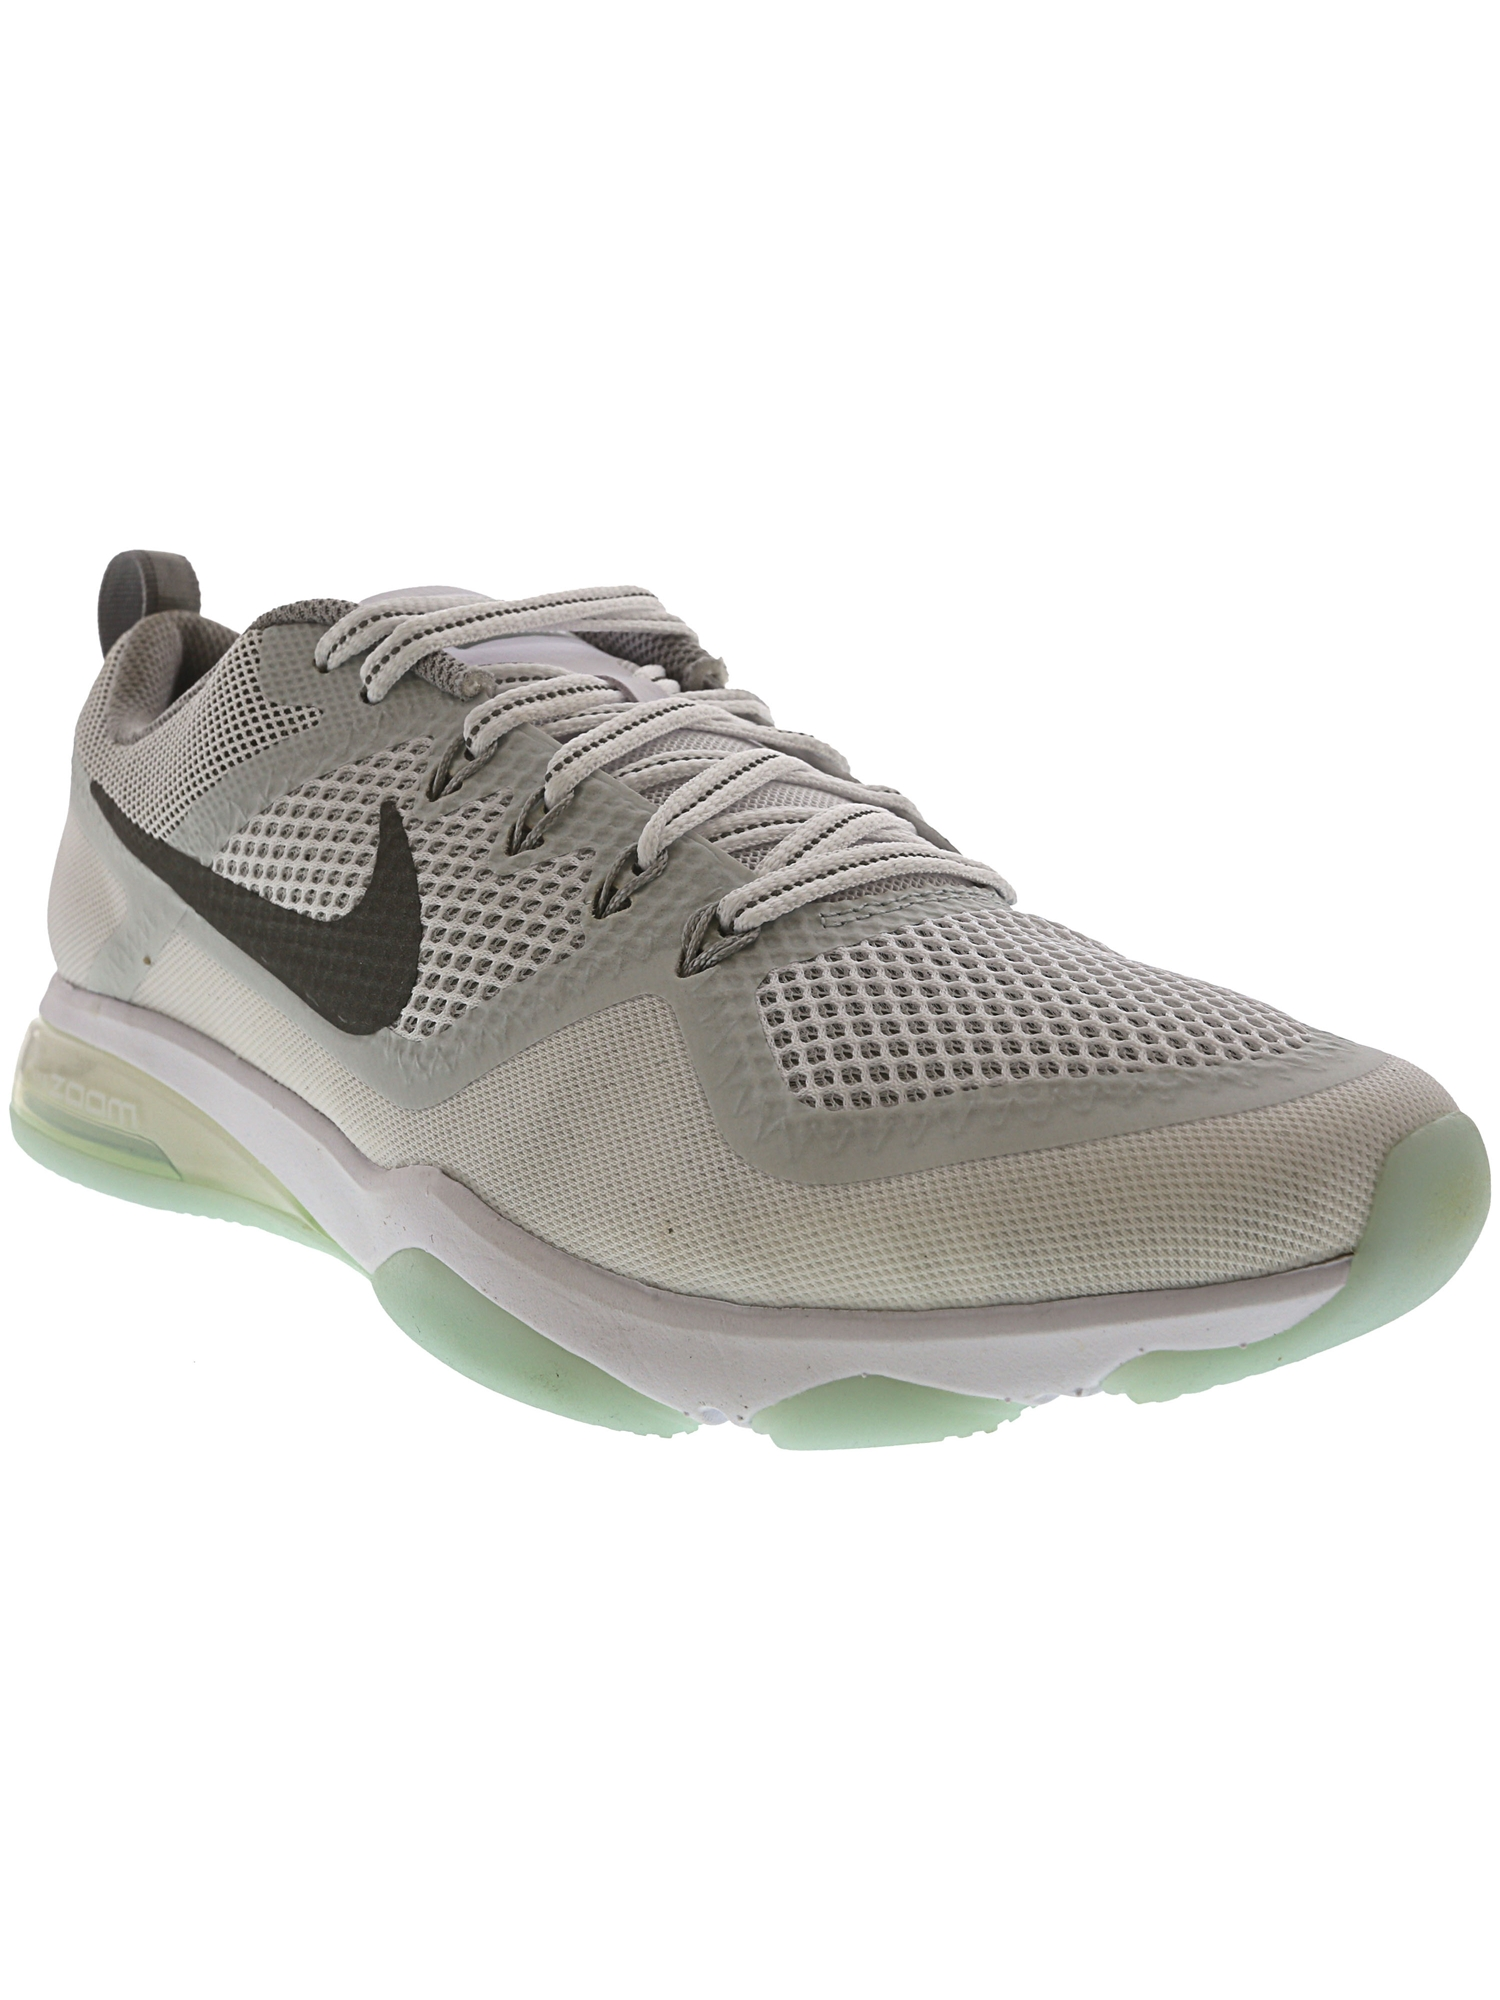 6ffe24b8f78bc Nike Women s Air Zoom Fitness Reflect White   Silver Ankle-High Training  Shoes - 9M